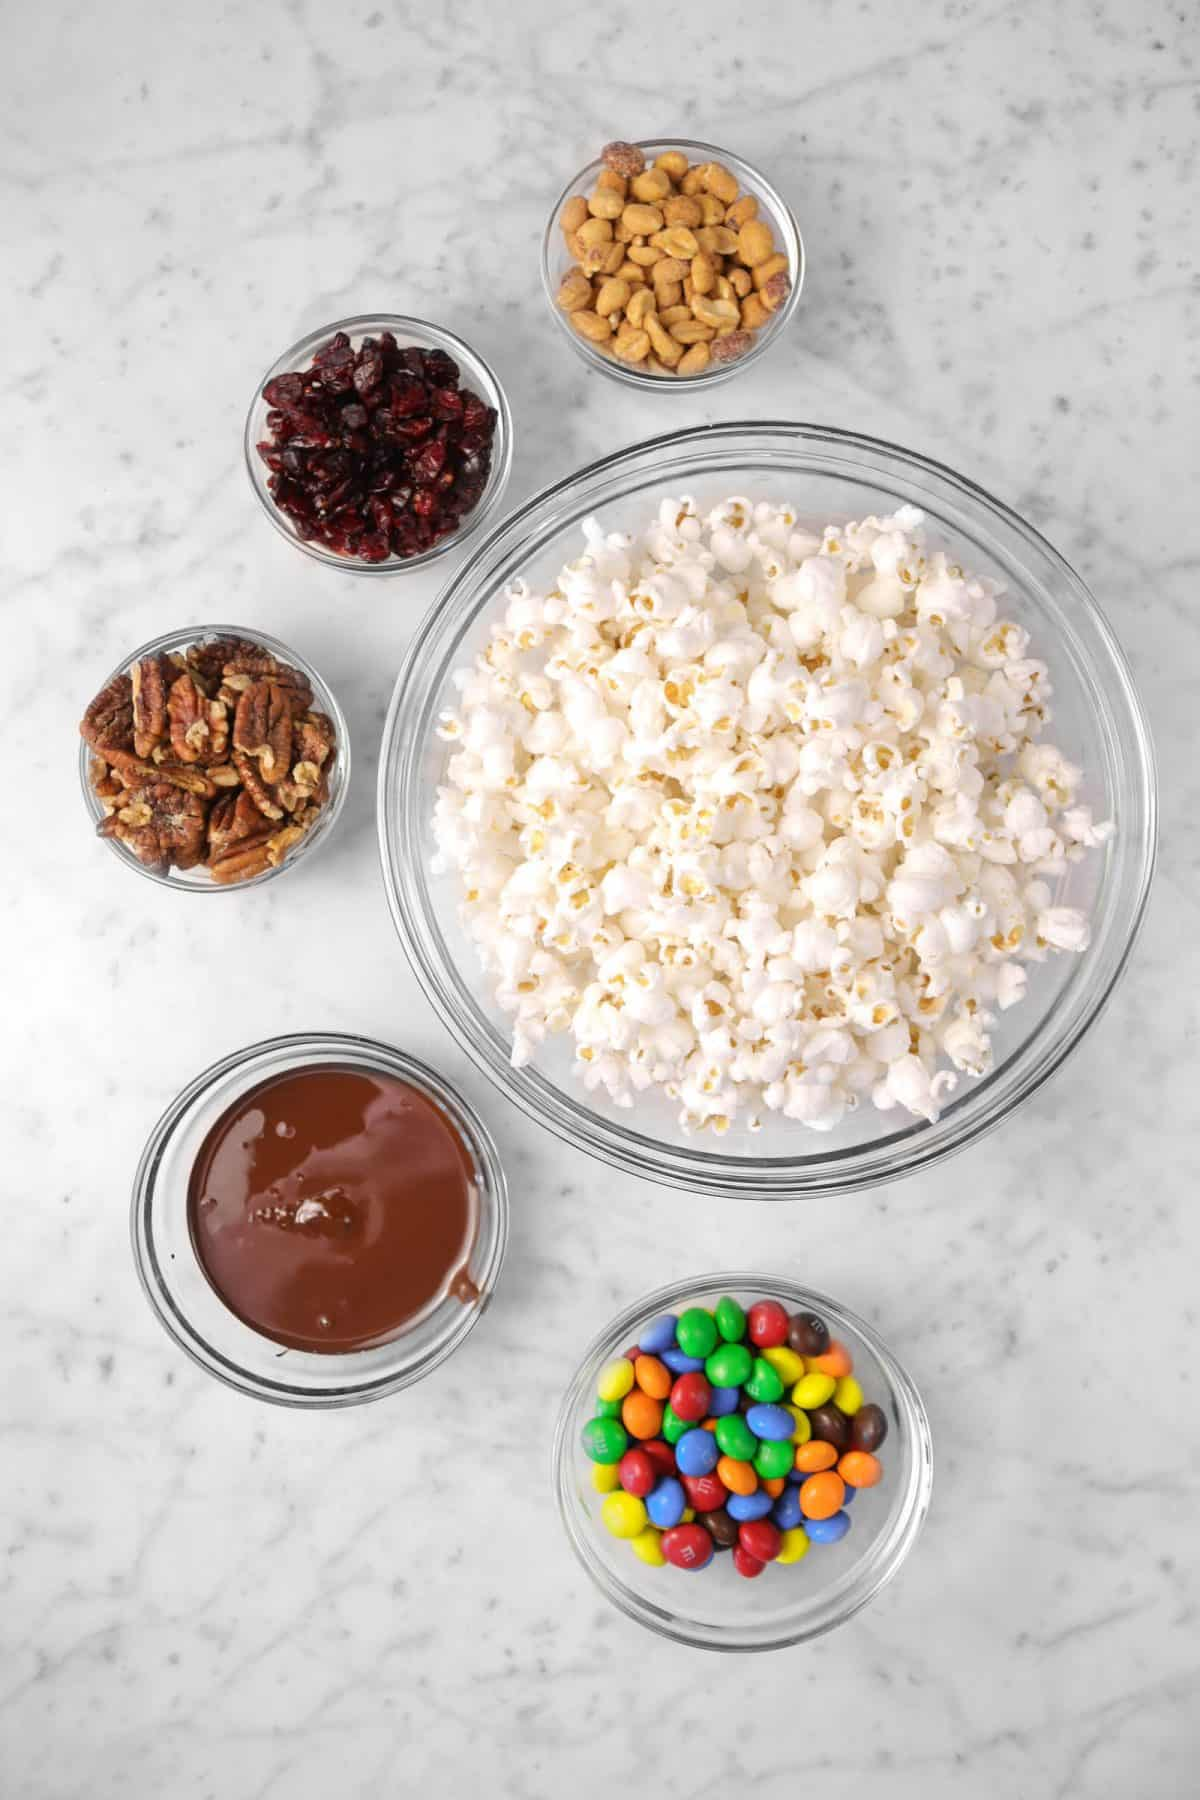 ingredients for a sweet and salty popcorn mix